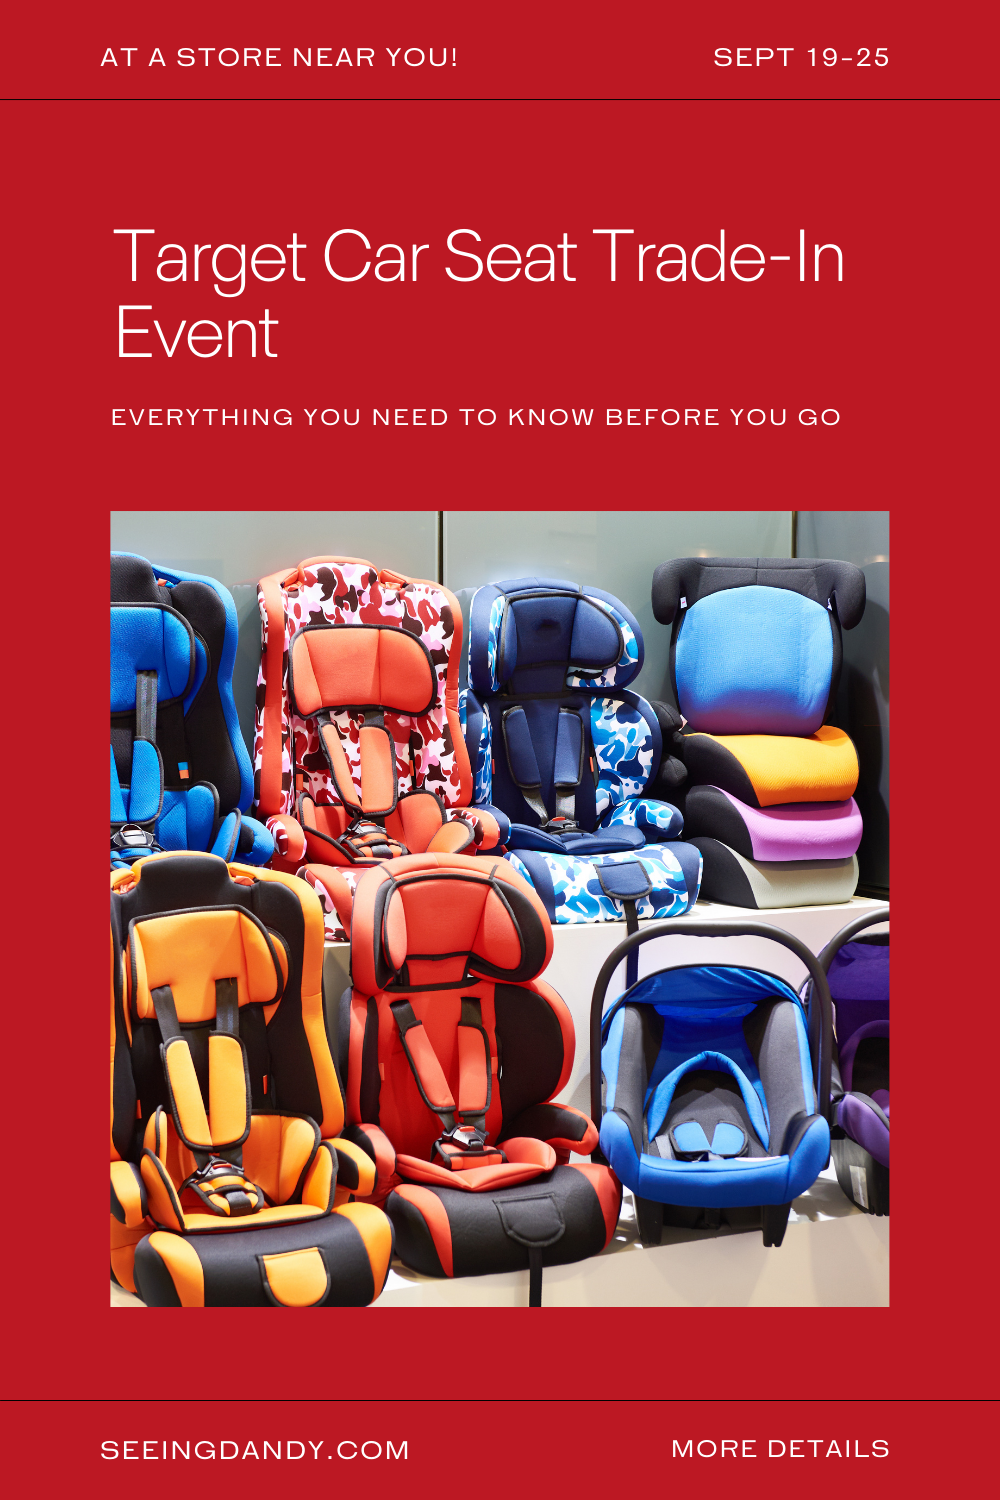 target car seat trade in event, st louis target stores, recycle car seats, baby gear car seats, target coupon